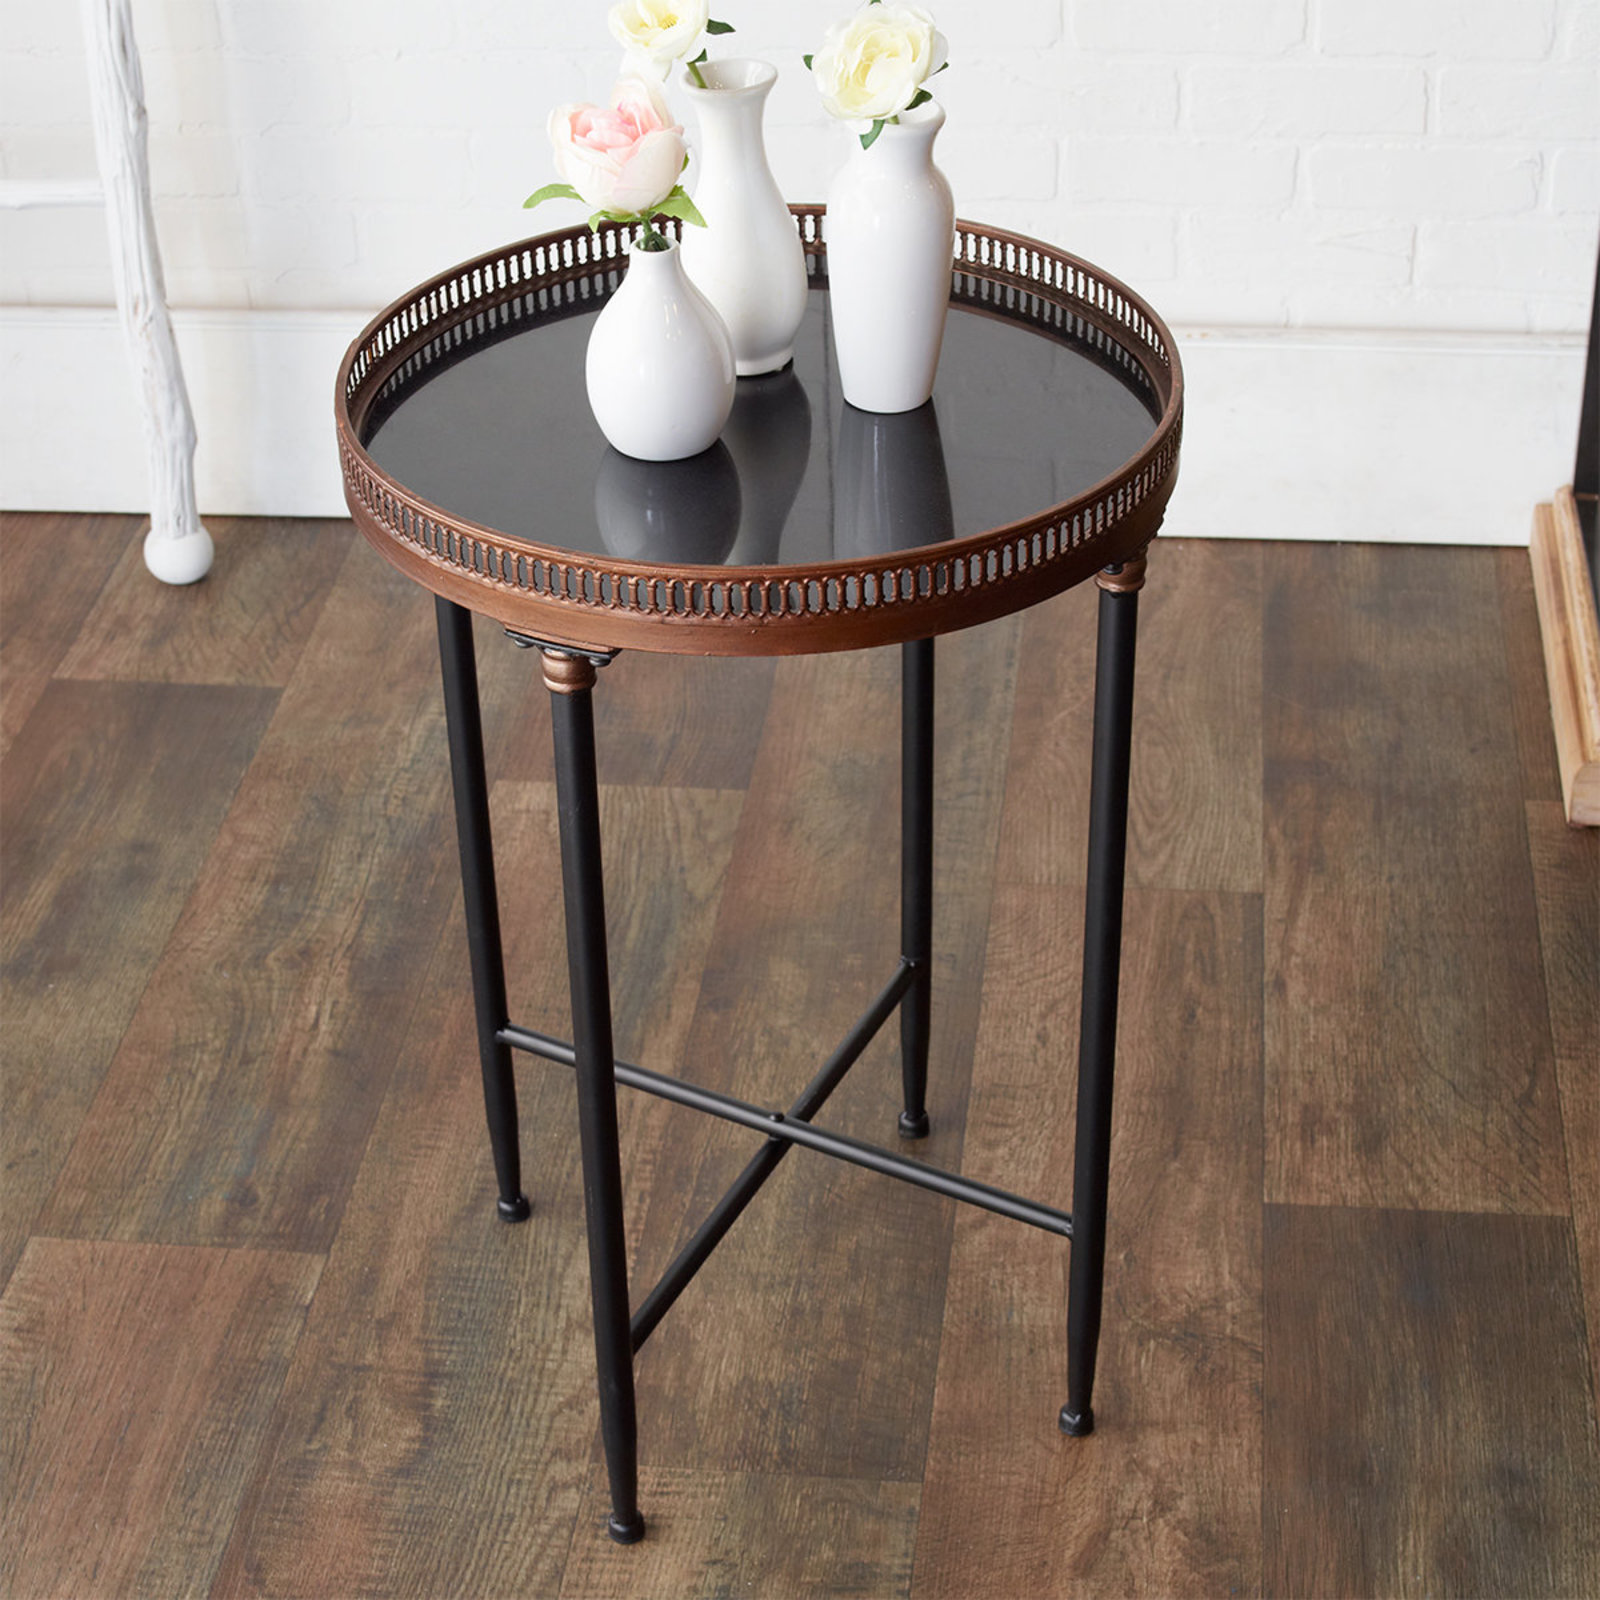 black and gold round accent table shades light outdoor wicker dining target wood side finish coffee wall lights entry furniture ashley tables hanging clock shower chair stone end